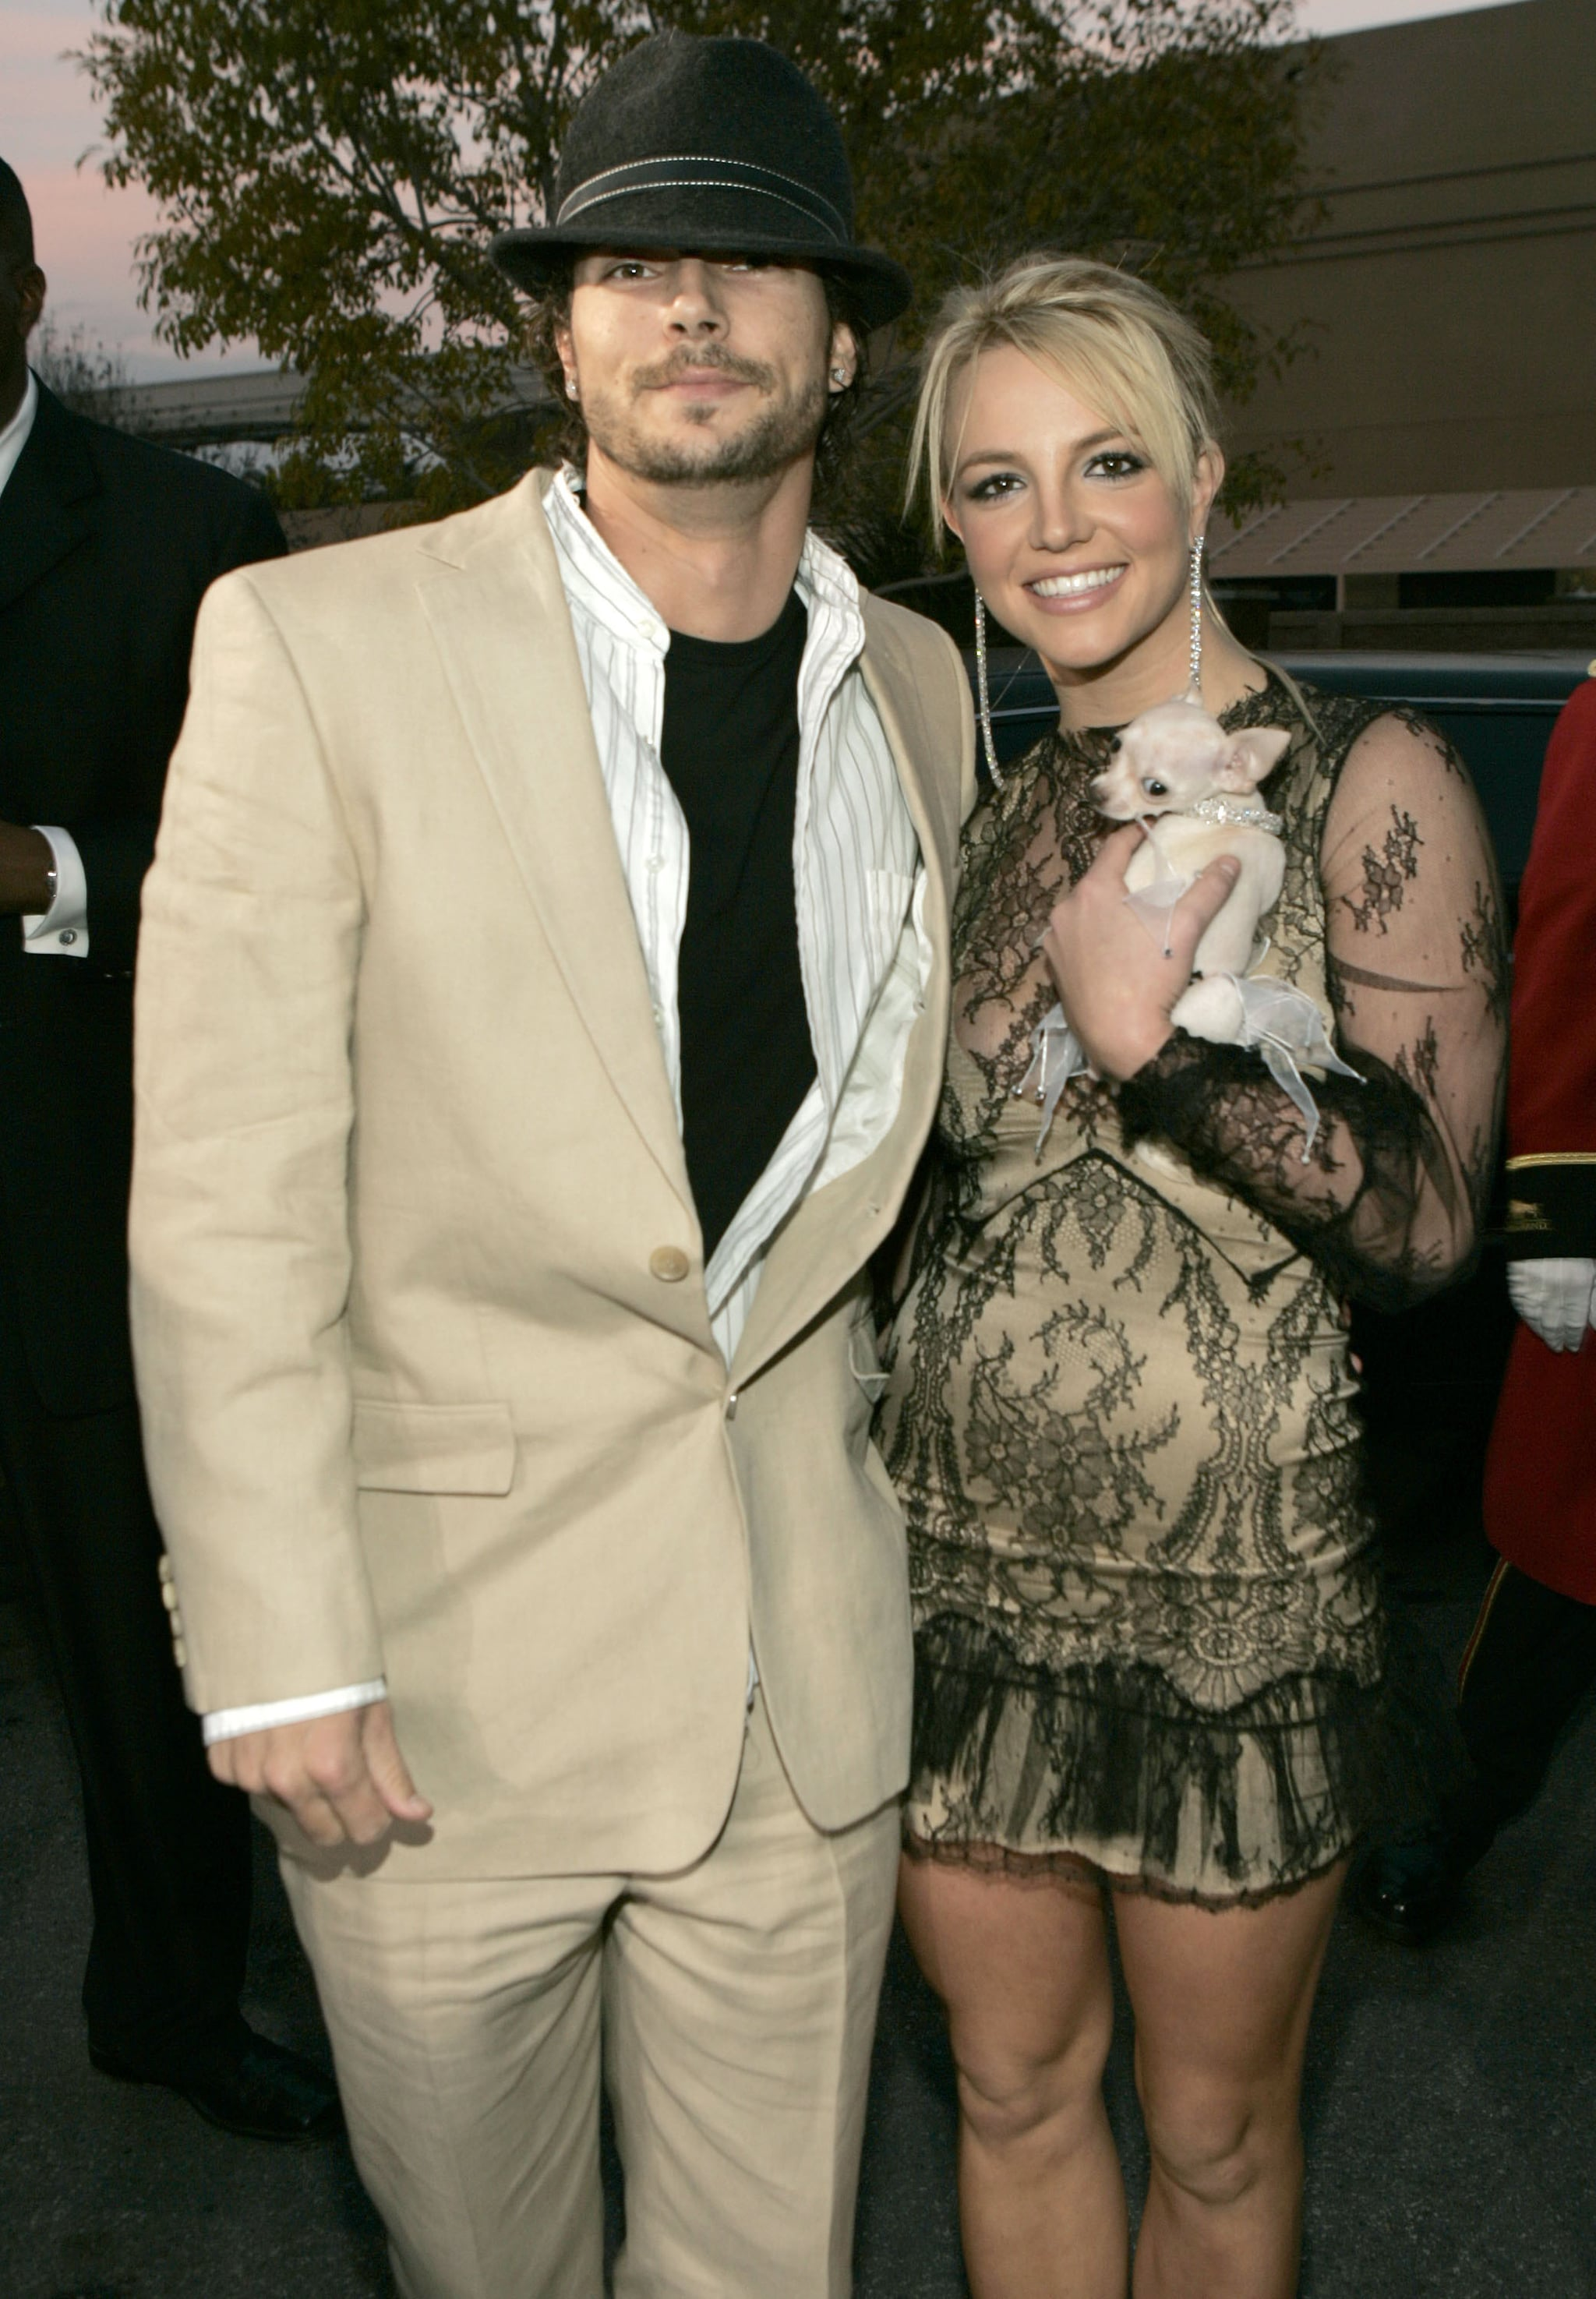 Kevin Federline and Britney Spears at the MGM Grand Garden in Las Vegas, Nevada (Photo by Kevin Mazur/WireImage)